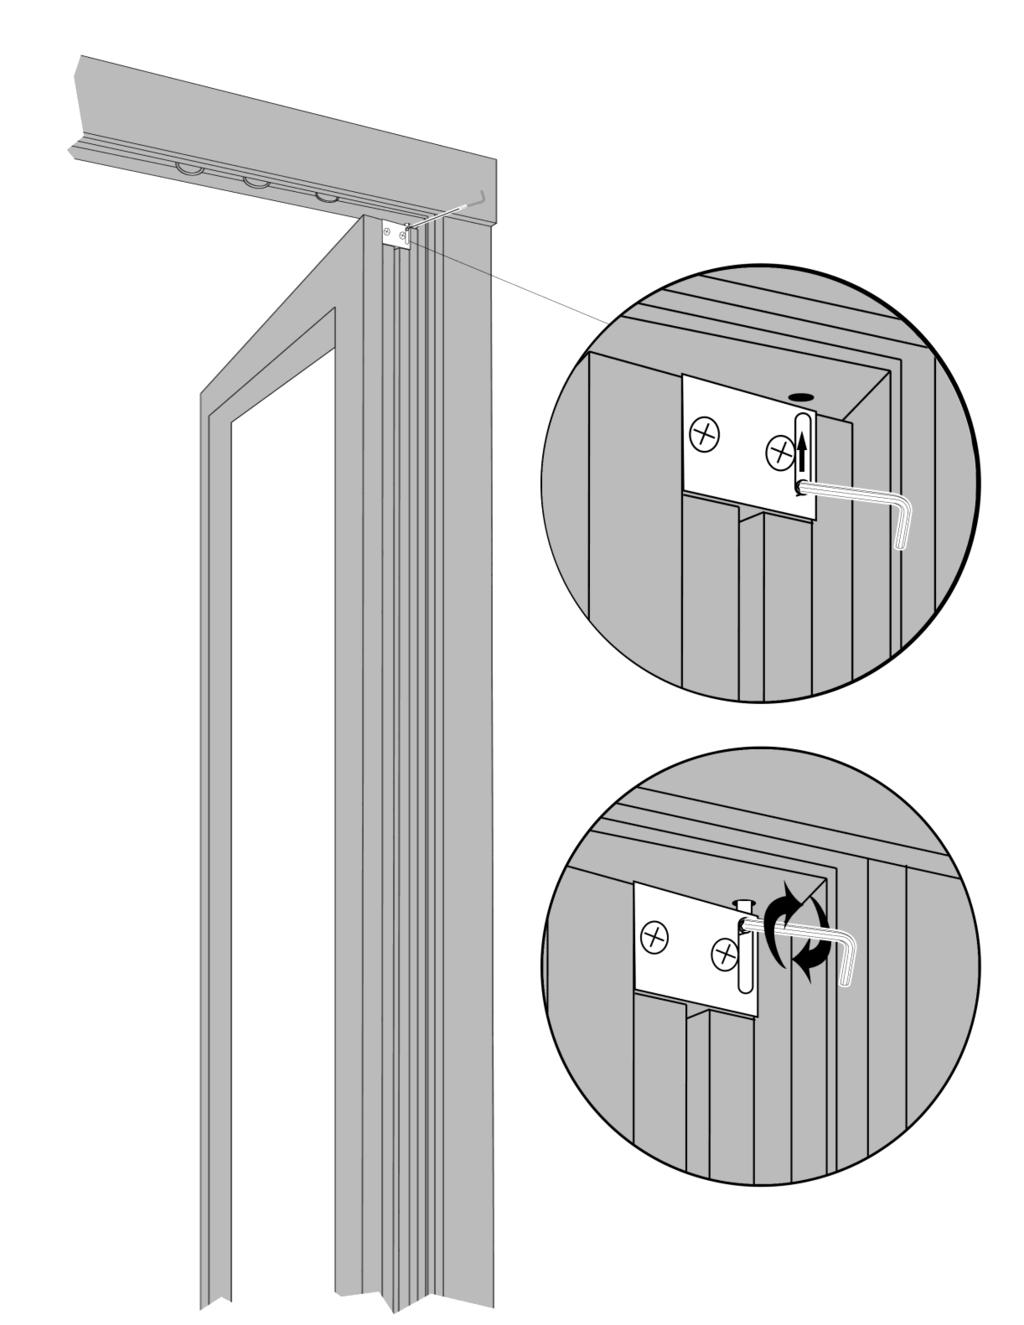 Inserting Active Swing Door Top Hinge Pin 11 1. Unscrew & Pull out the Pivot Block. 2. Place door in bottom Pivot 3.